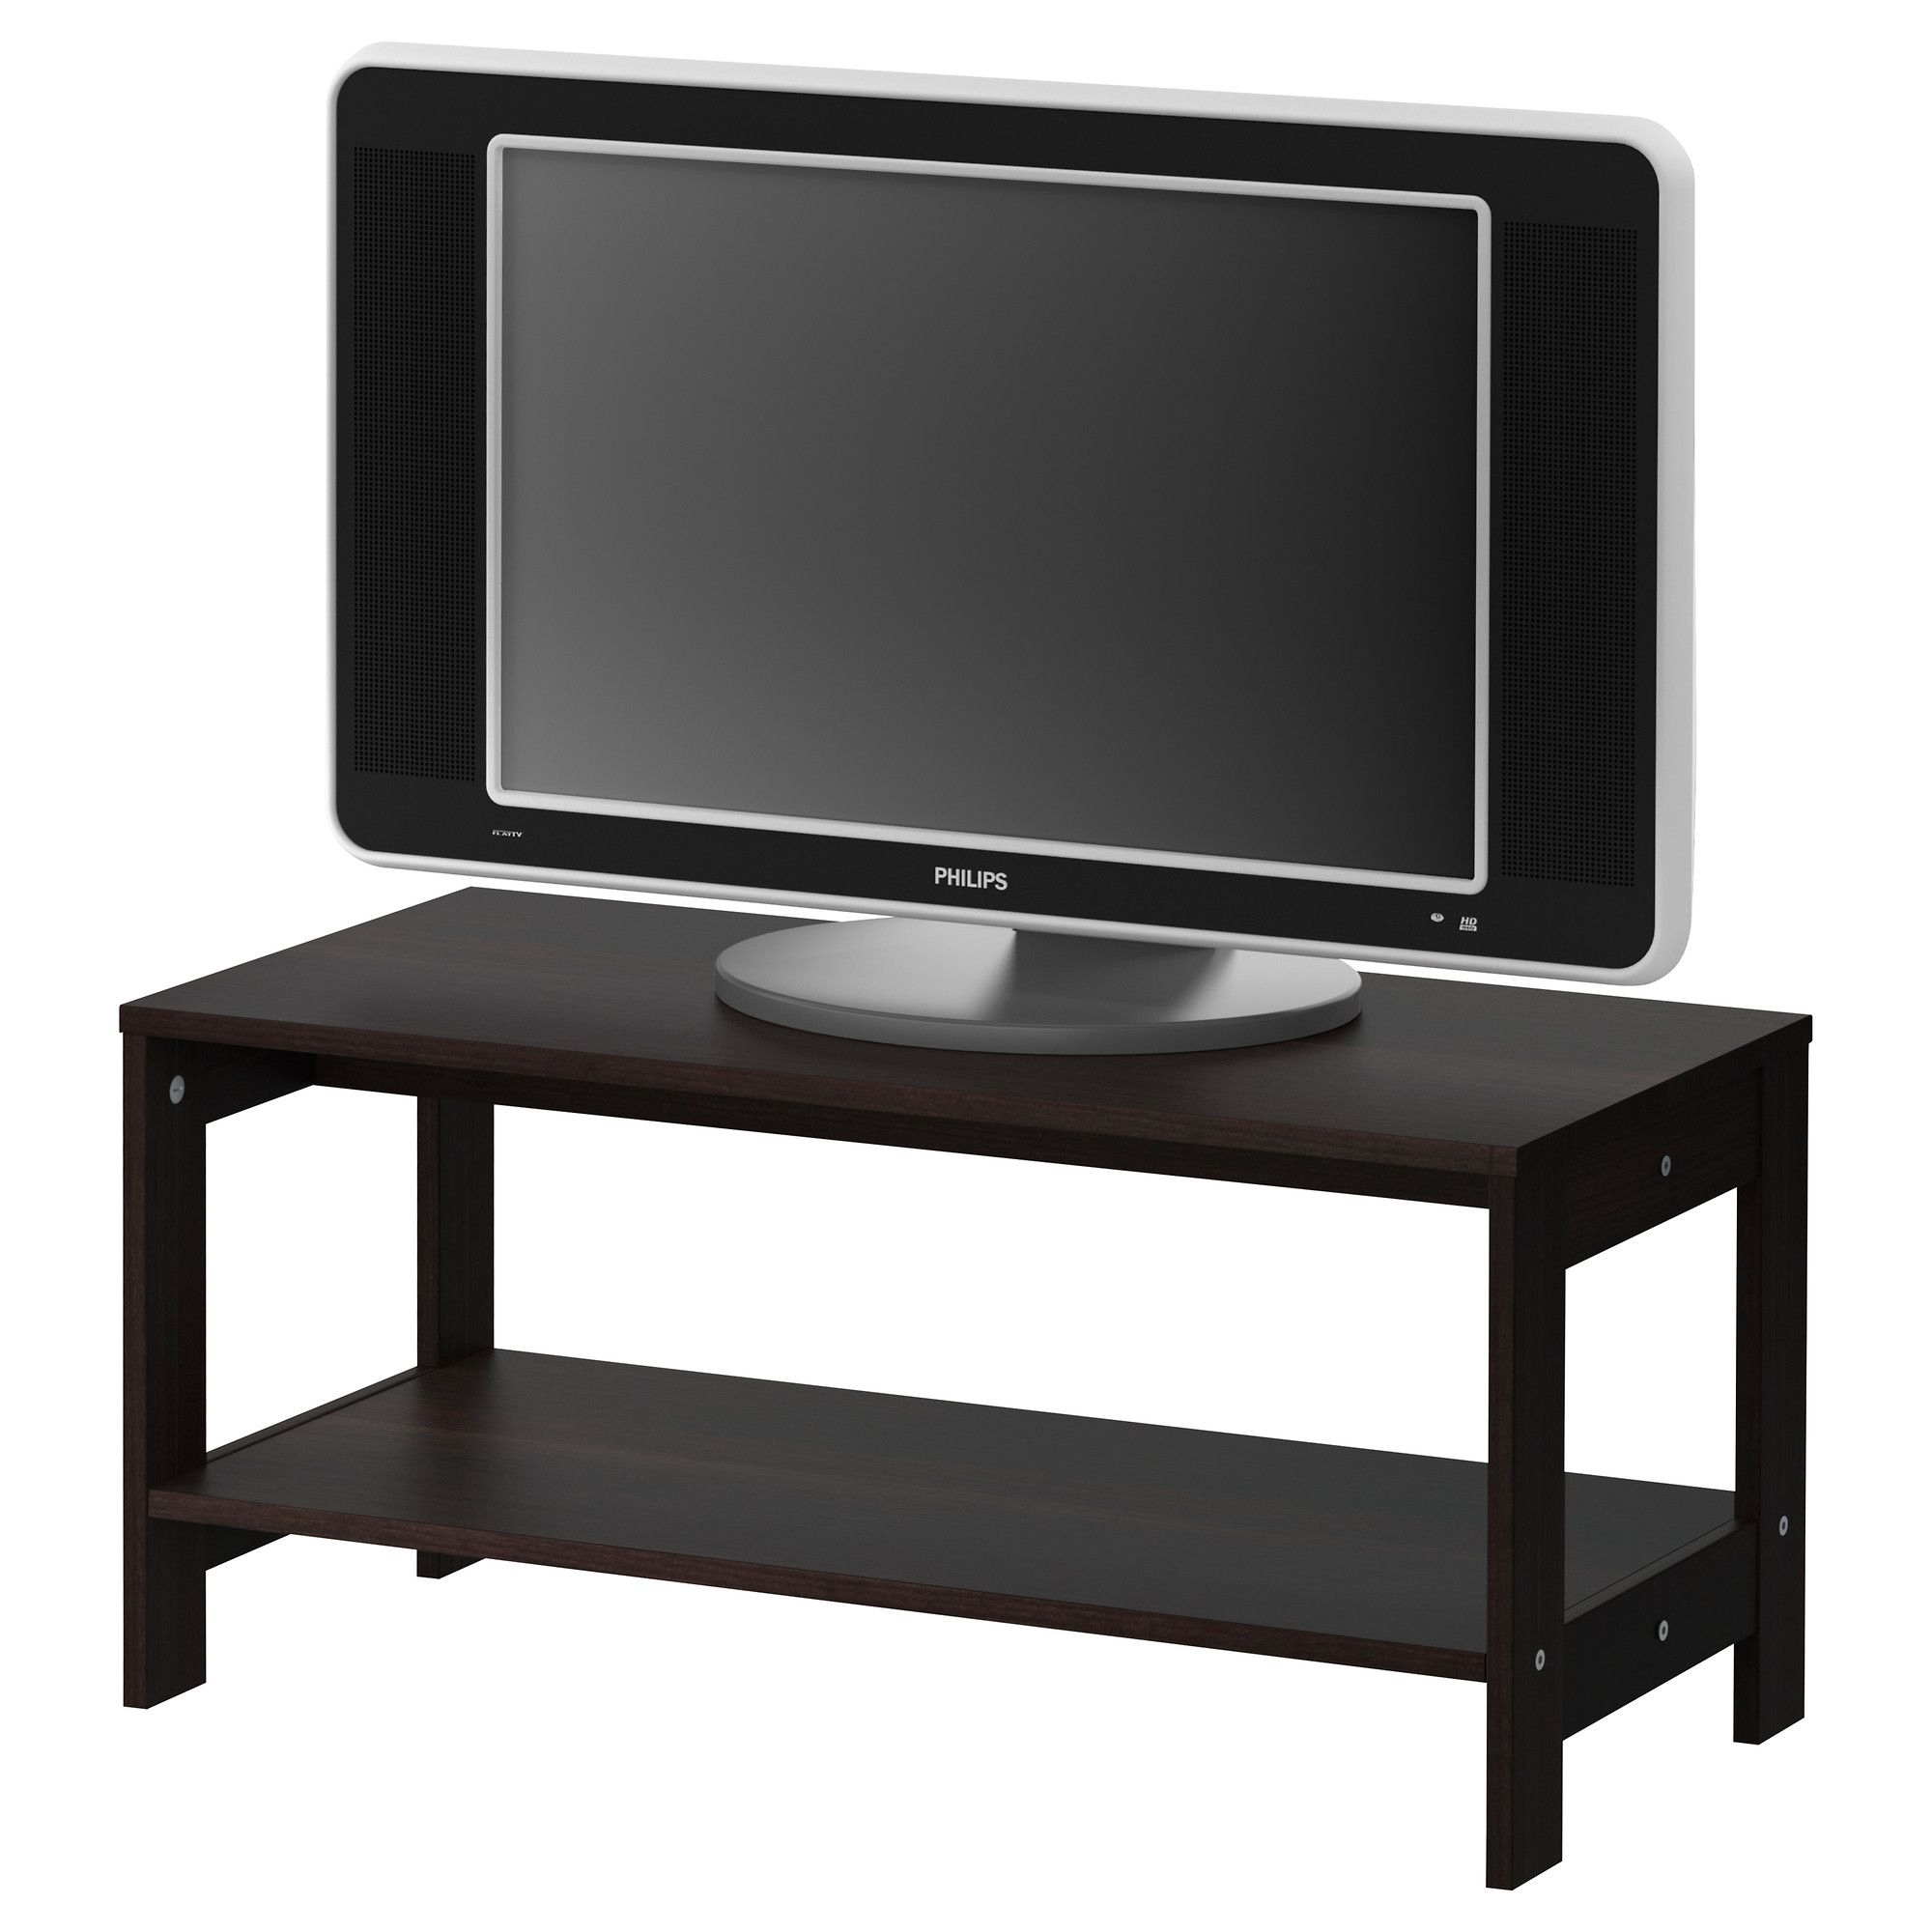 Products | Tv Unit Ikea, Ikea Laiva, Tv Stand Throughout Tv Stands At Ikea (View 11 of 15)